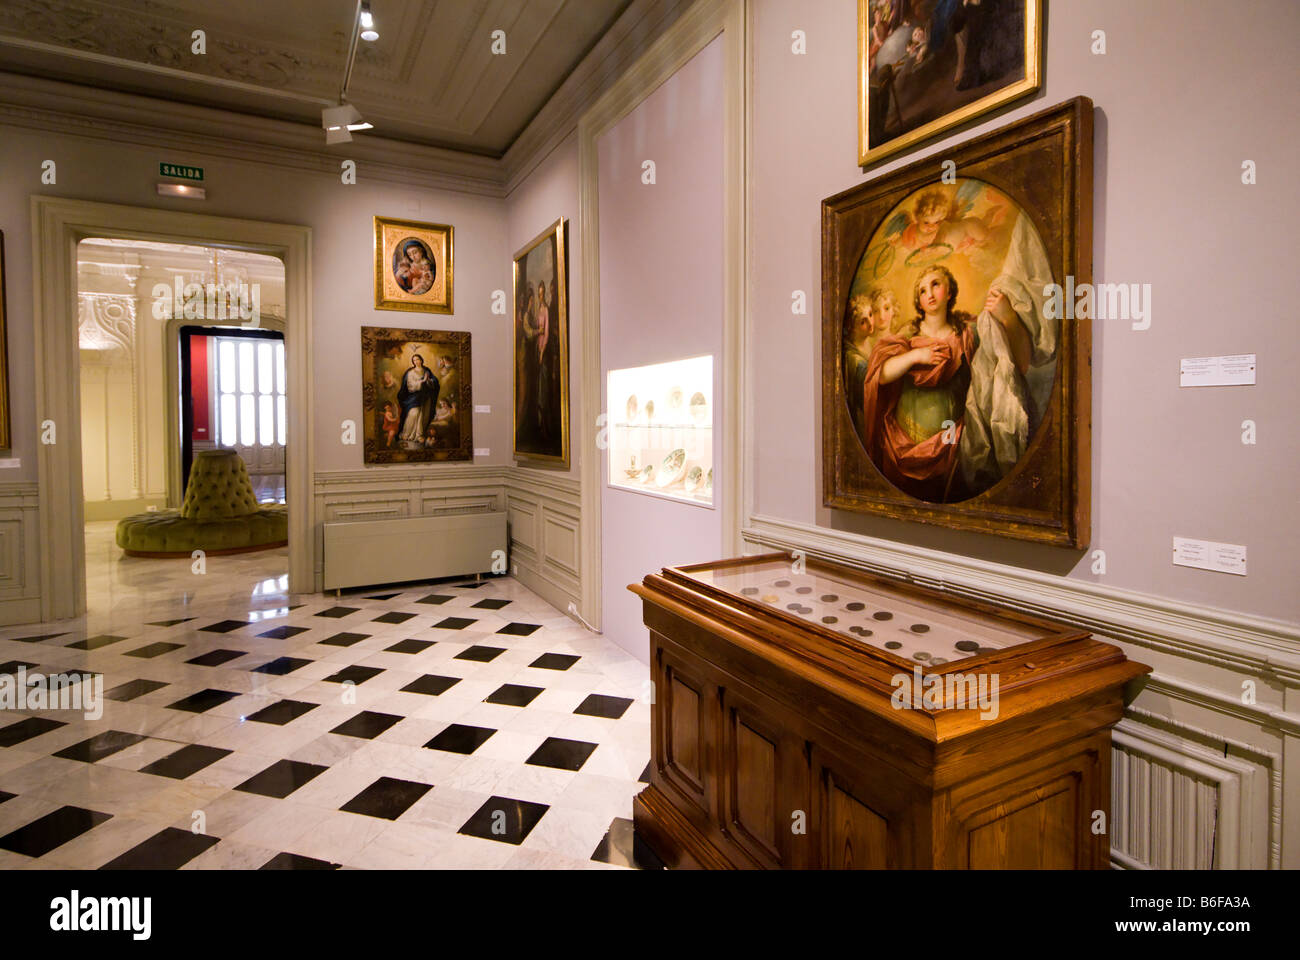 Religious paintings inside the City Museum of Valencia building Spain Museo de la Ciudad - Stock Image